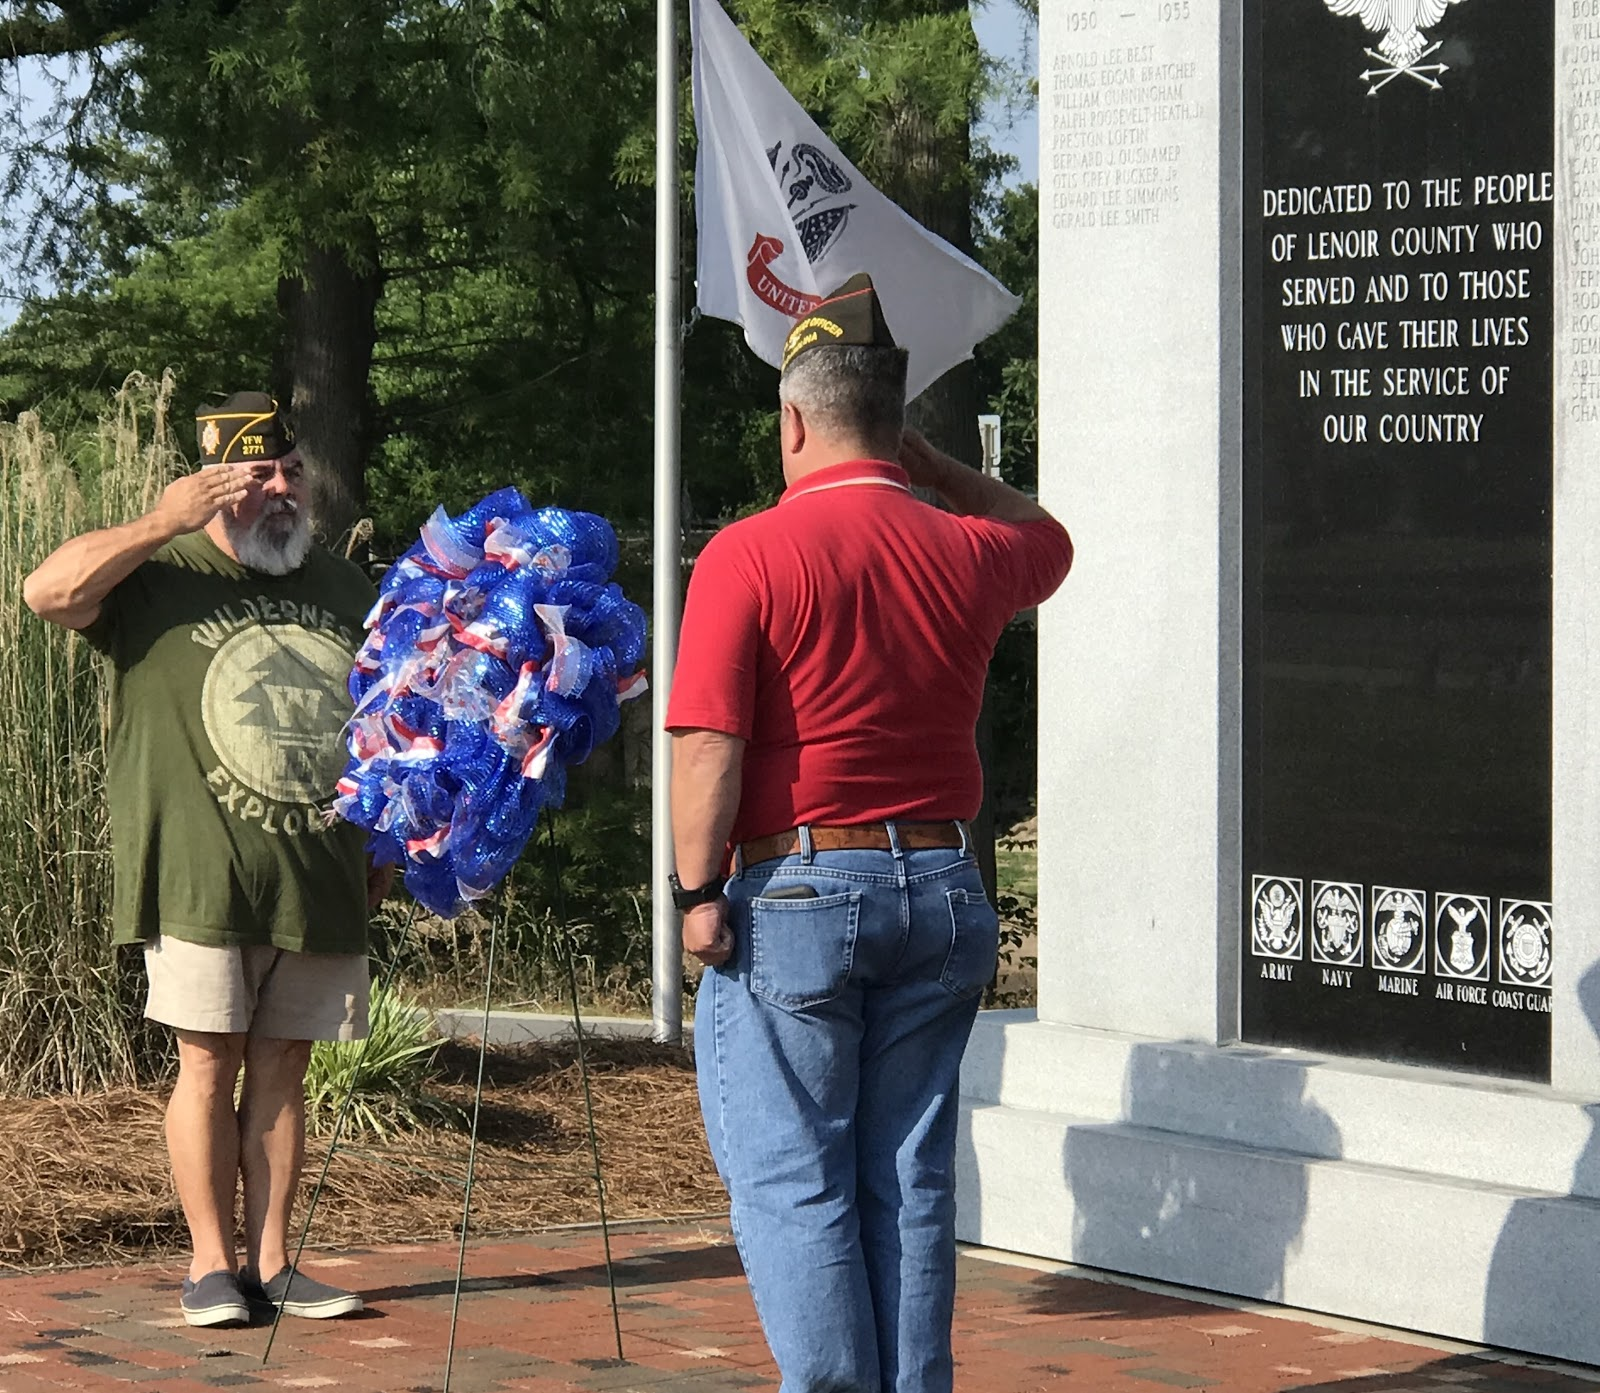 VFW Post 2771 Members salute a remembrance wreath at the Walk of Honor on Heritage Street.